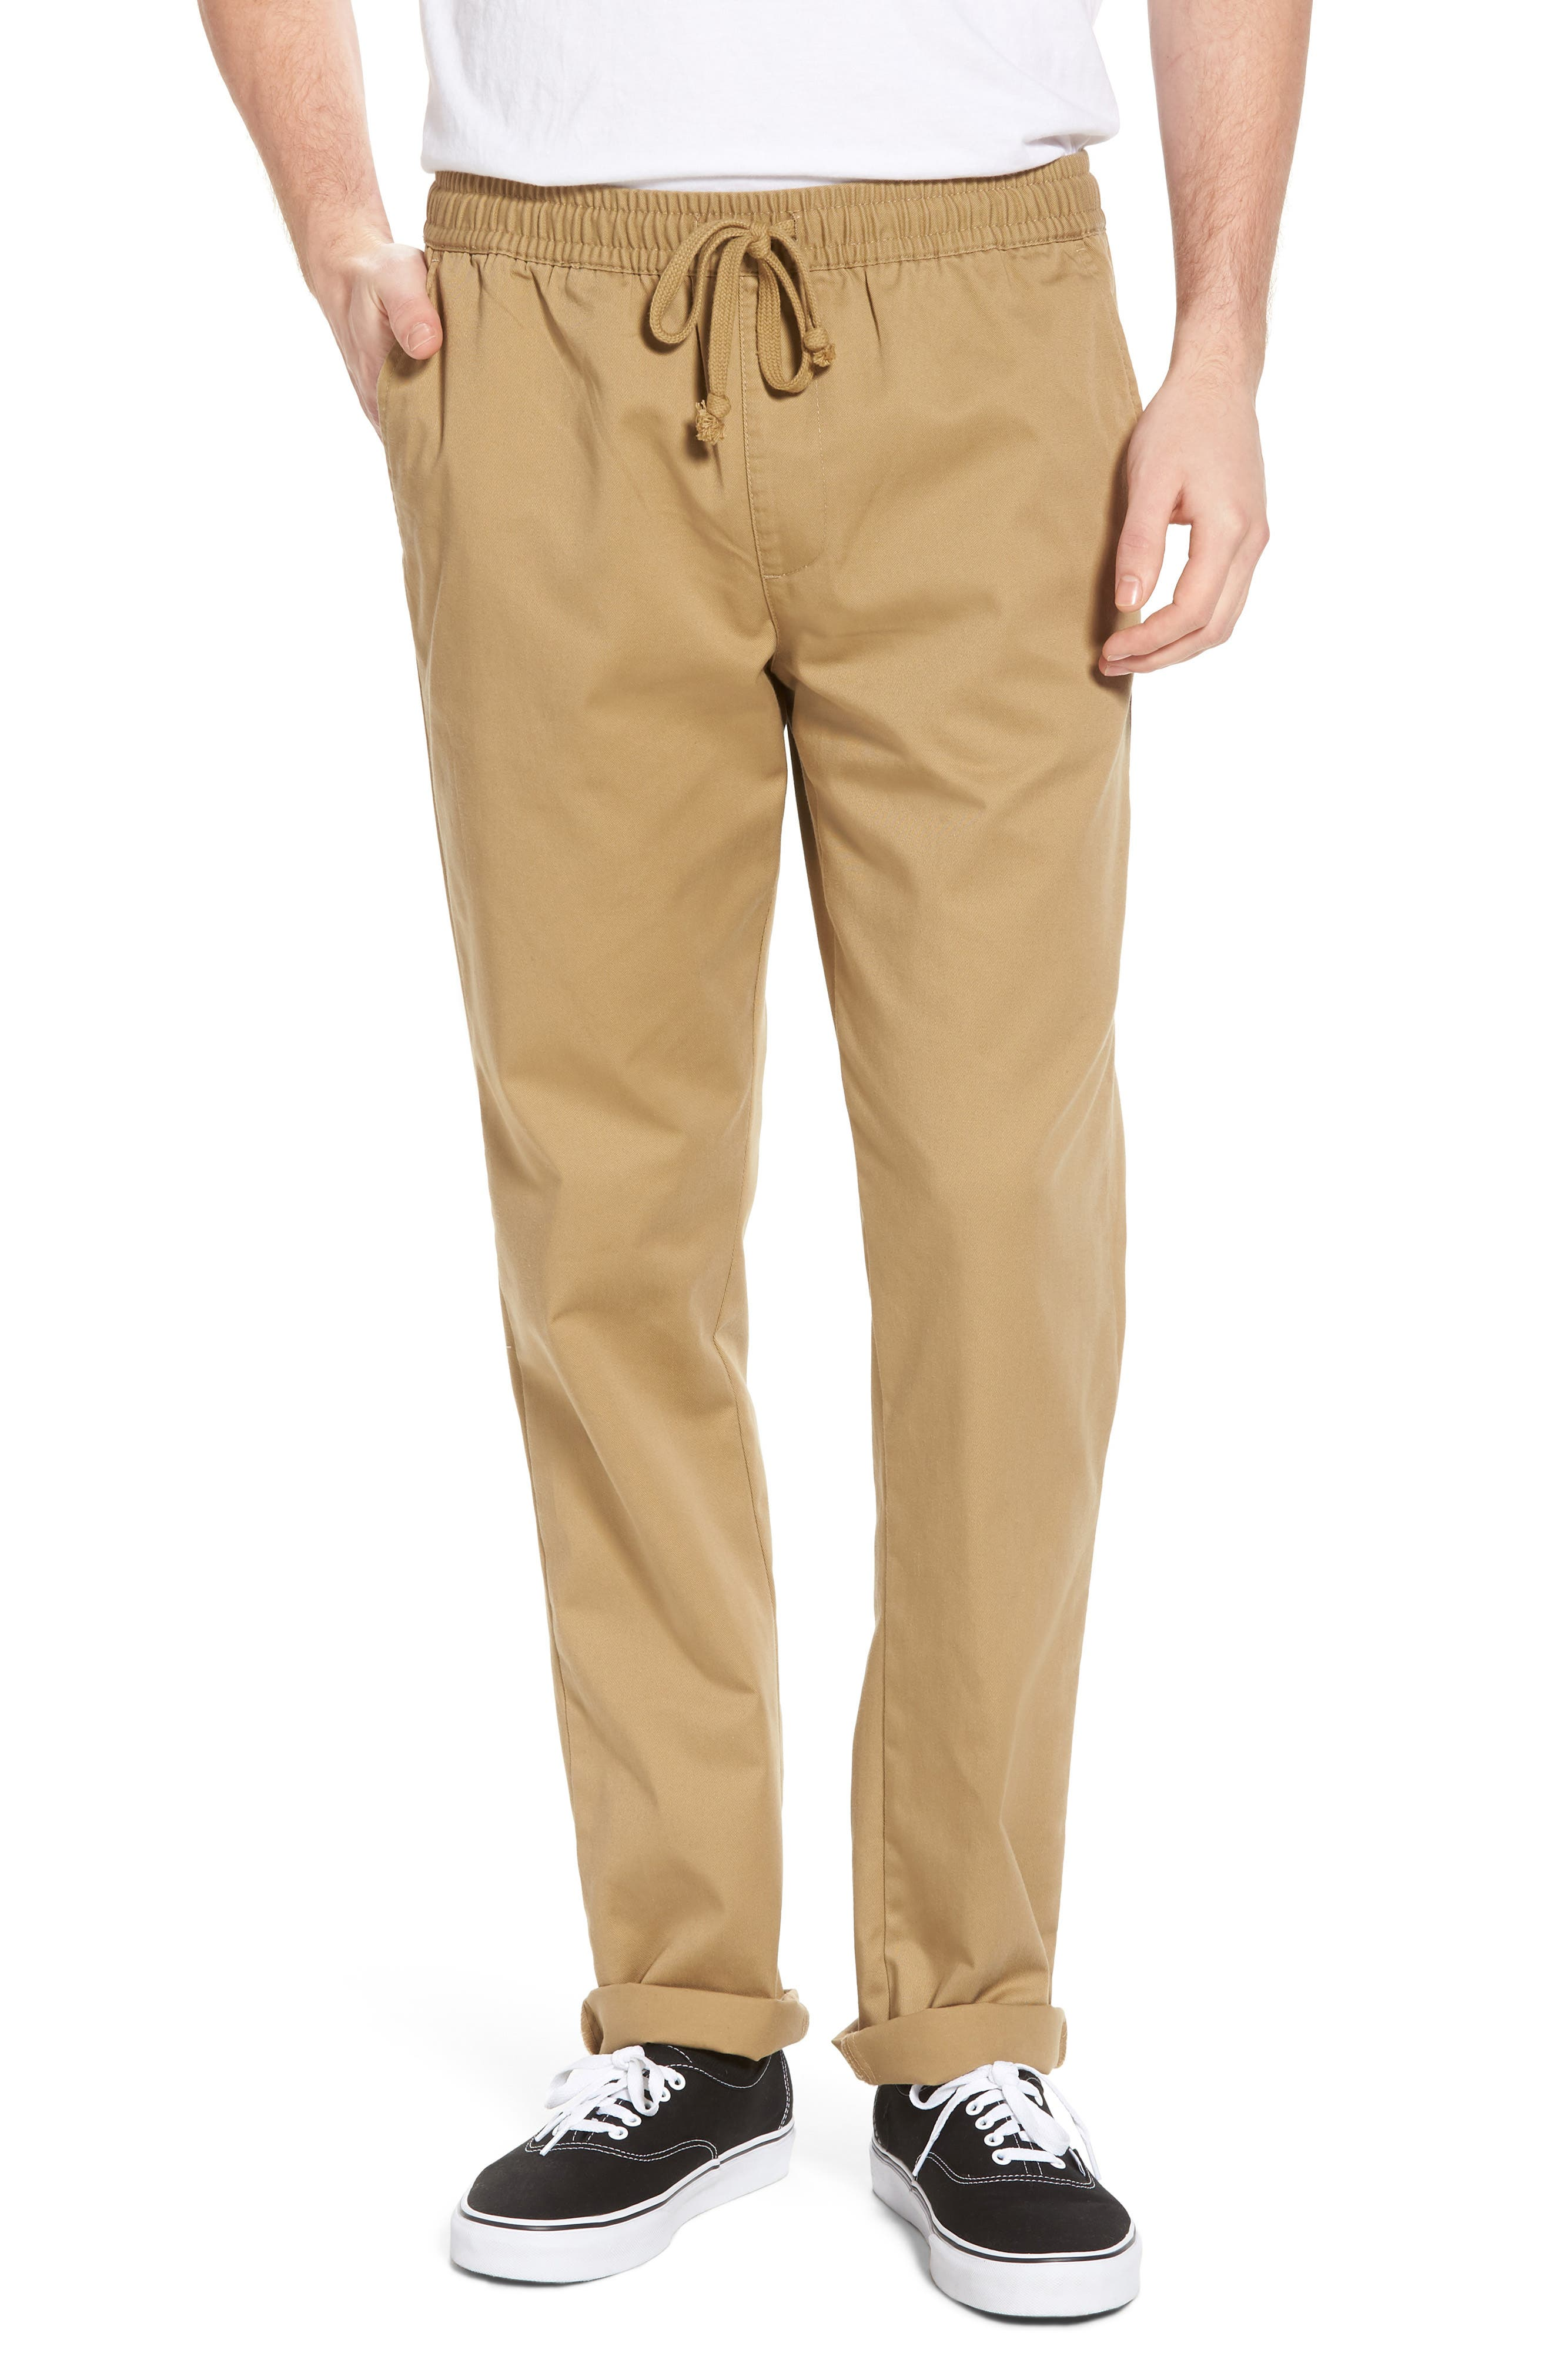 A.T. Dayshift Pants,                             Main thumbnail 1, color,                             Dark Sand